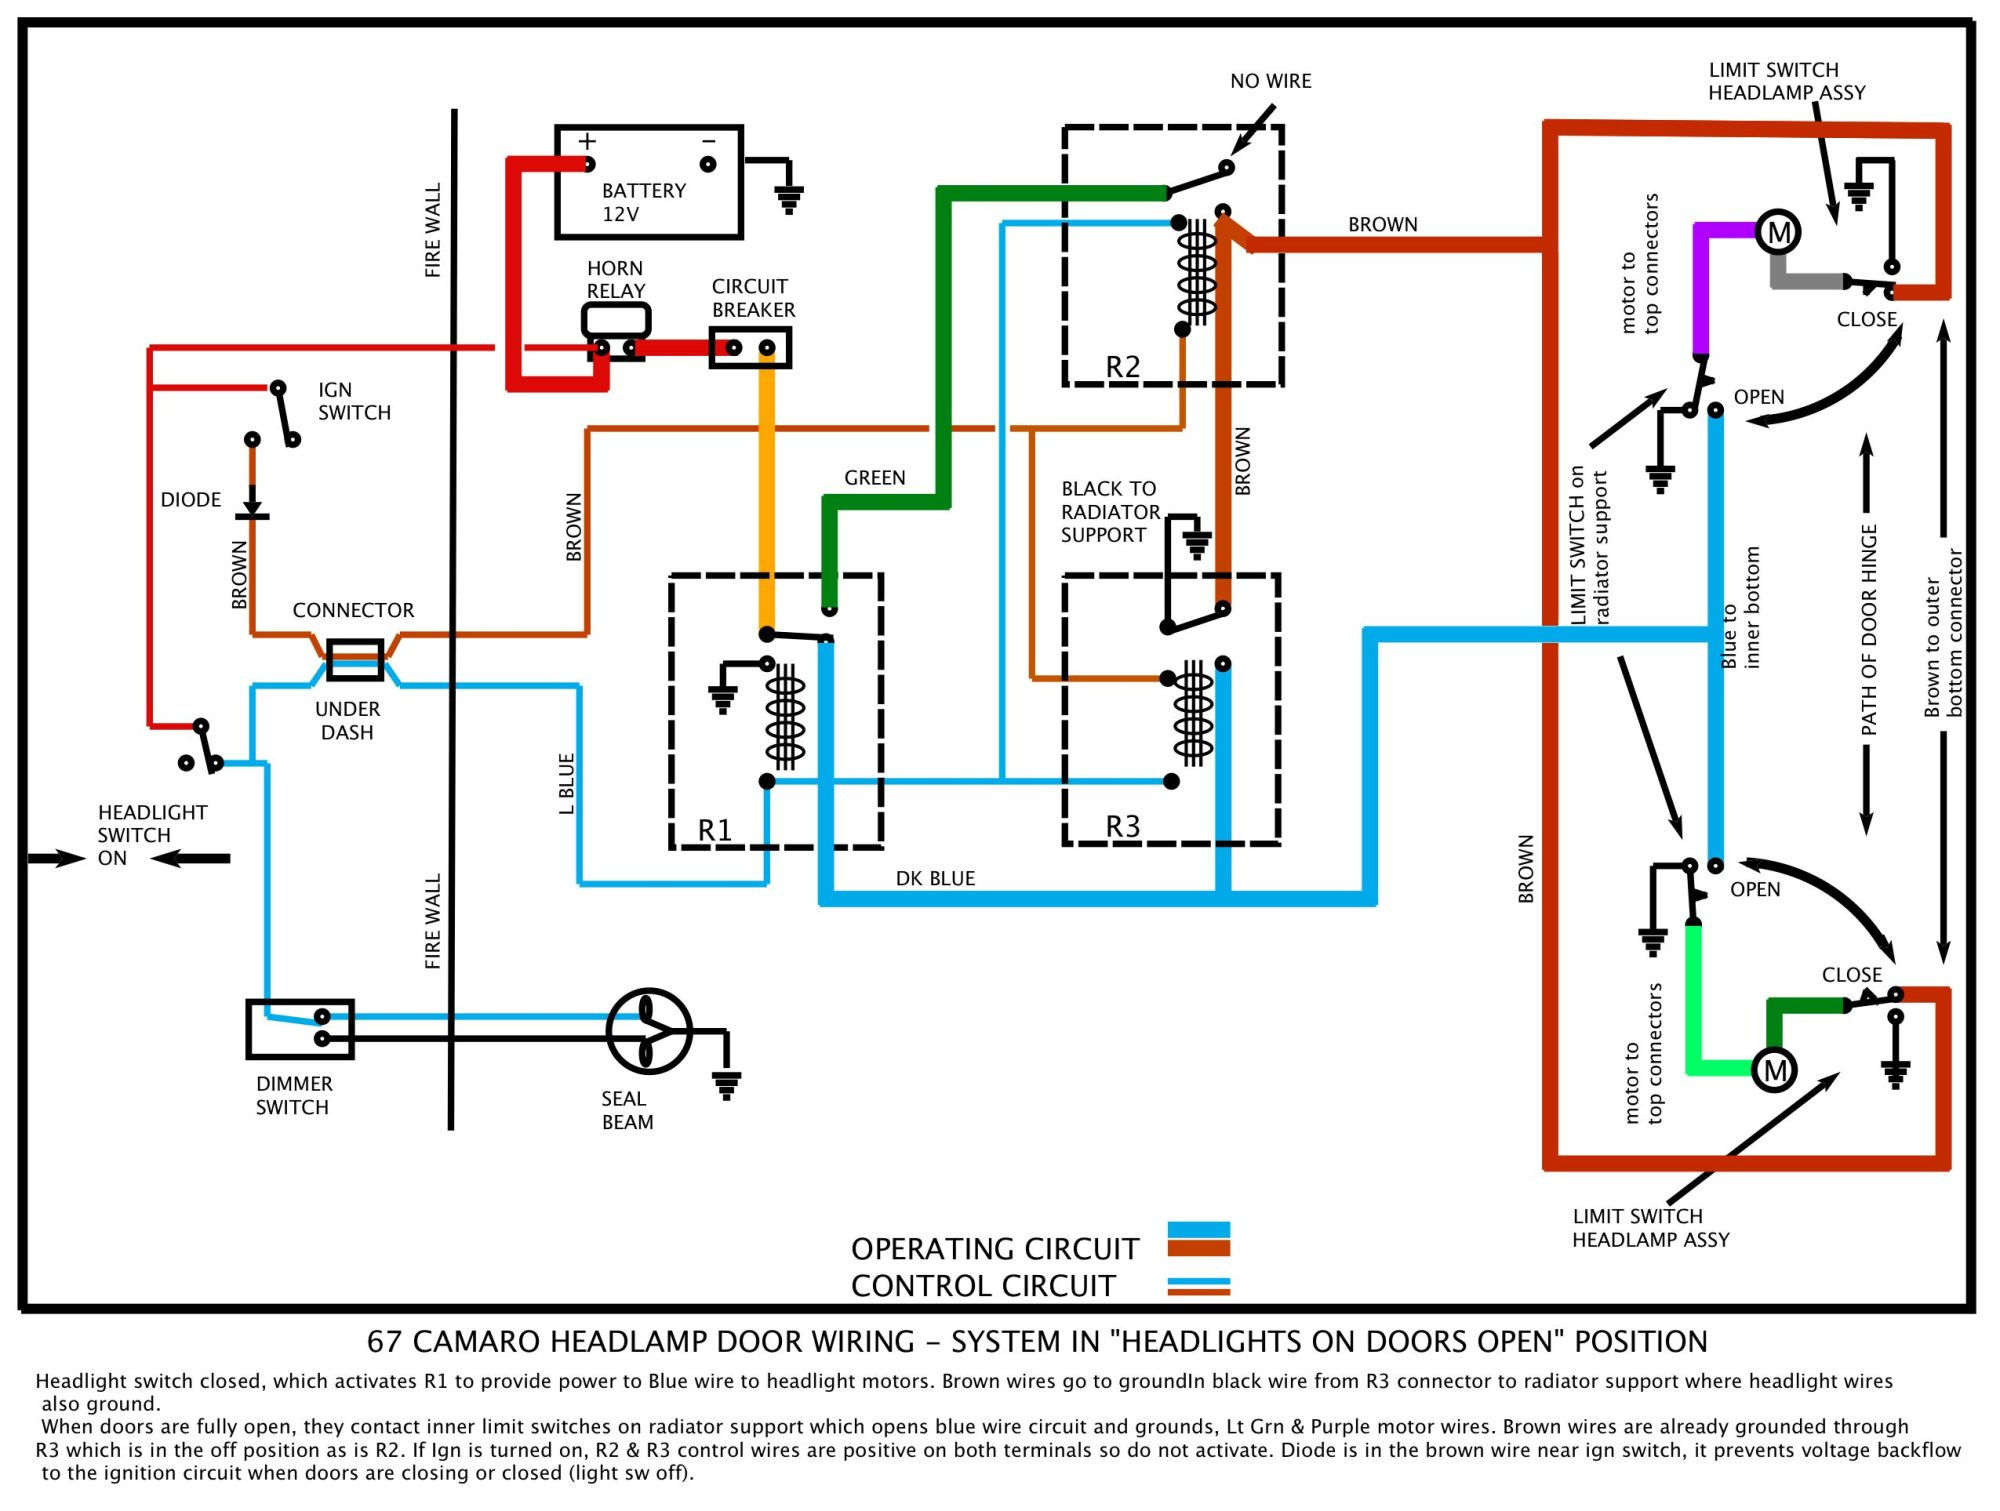 hight resolution of 67 camaro wiring harness diagram wiring diagrams konsult 1967 camaro painless wiring harness diagram